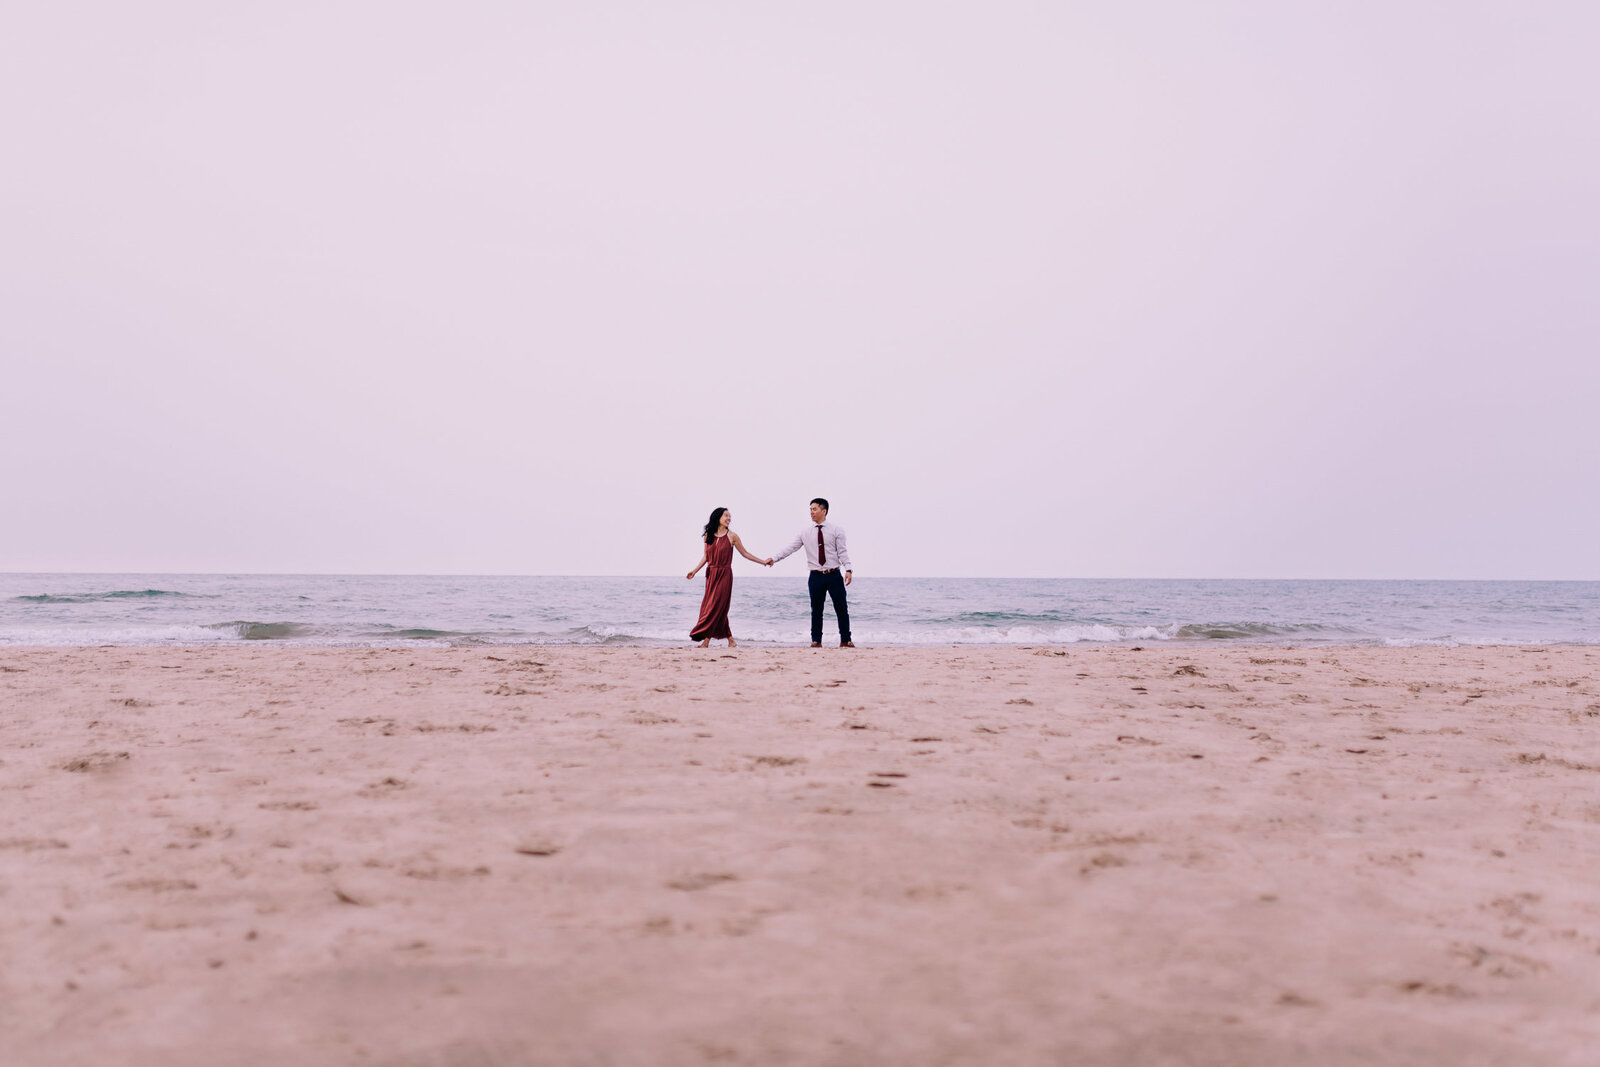 erica-andrew-downtown-chicago-engagement-photography-videography-montrose-beach-5